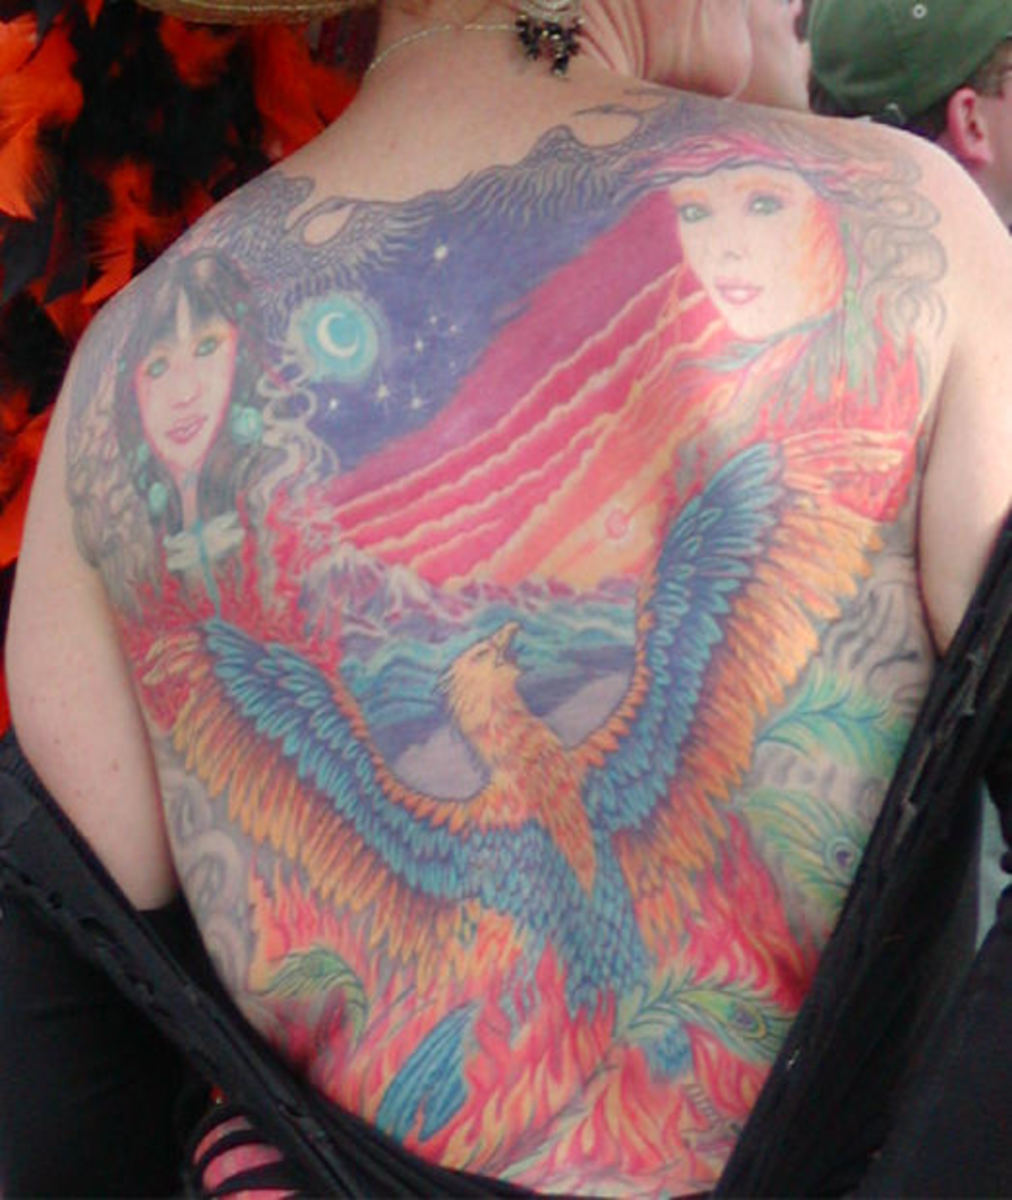 Feel The Awesomeness That Is This Full Back Piece